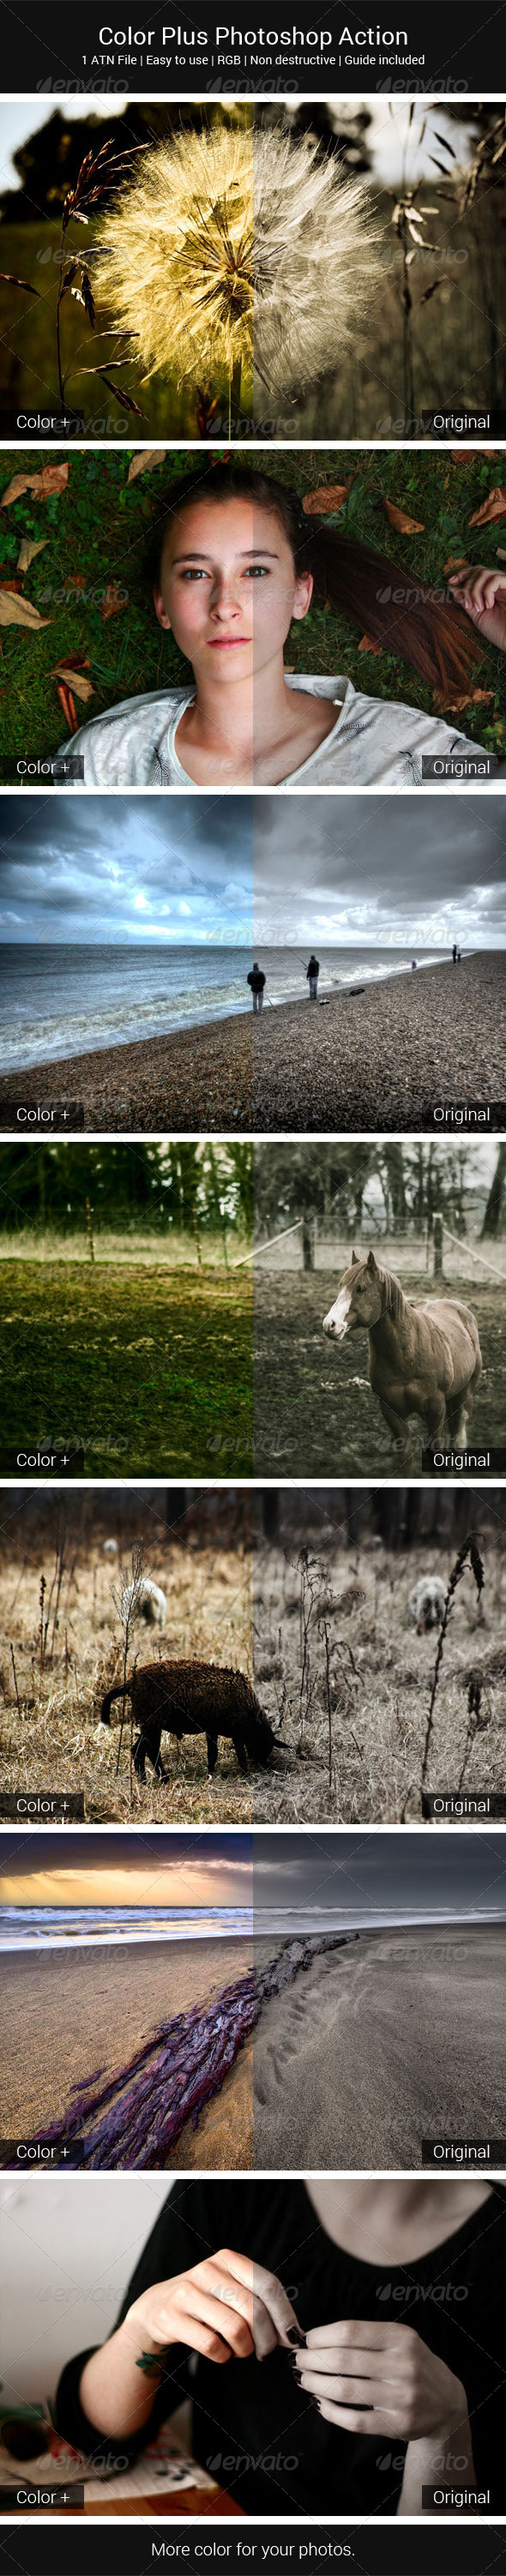 GraphicRiver Color Plus Photoshop Action 5591553